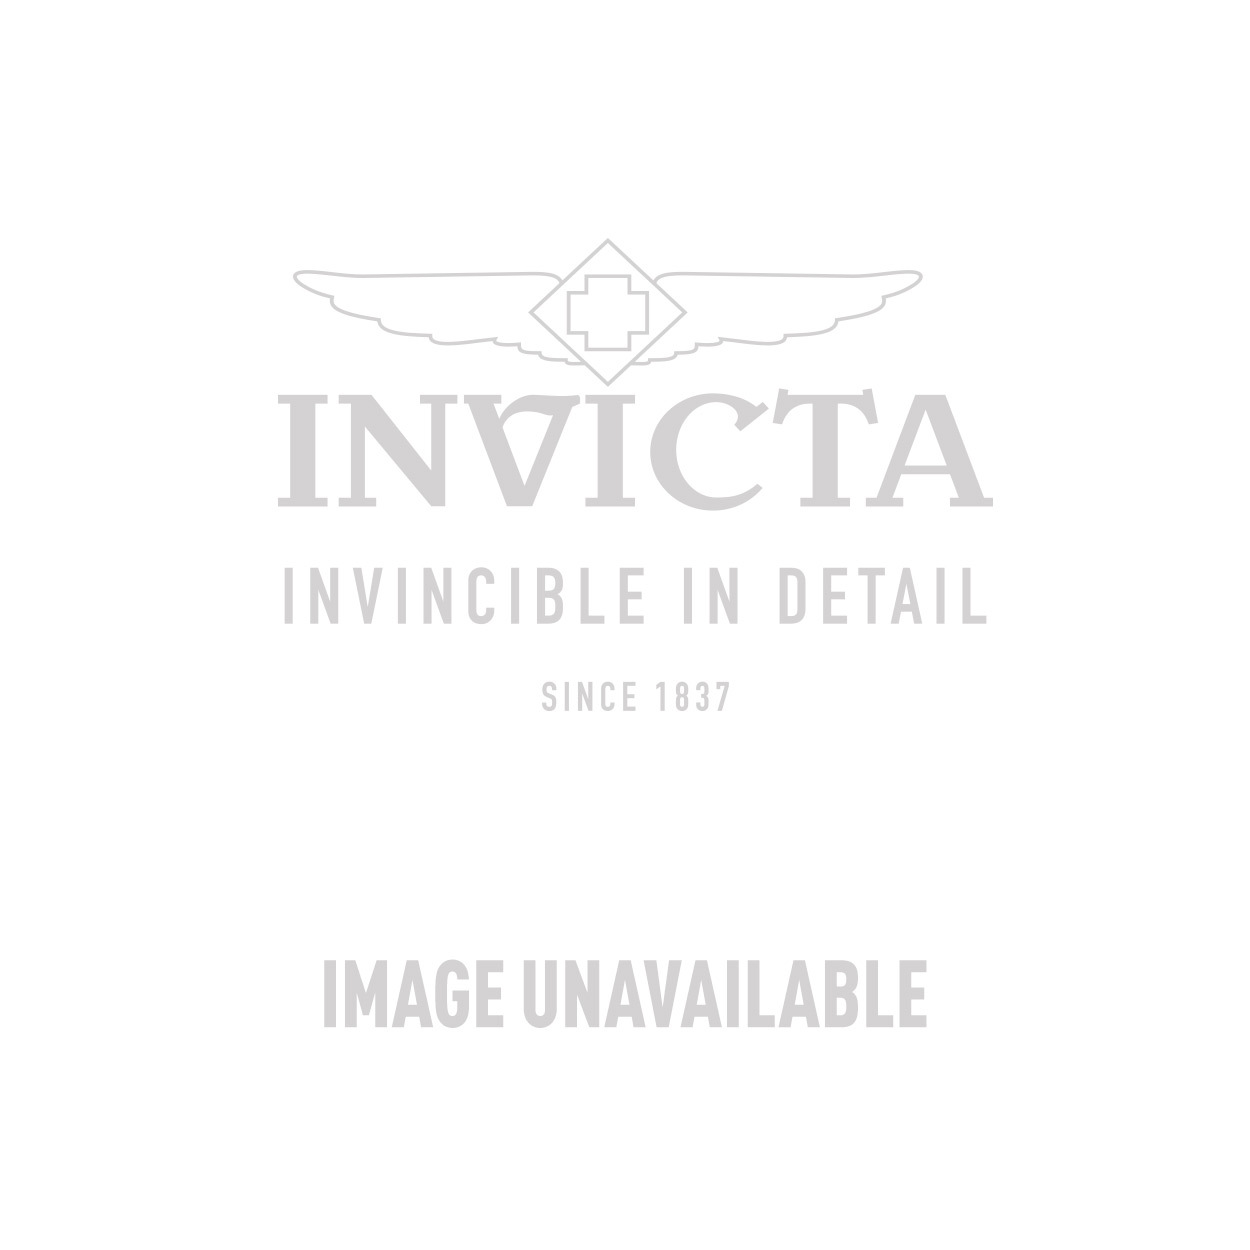 Invicta Reserve Swiss Made Quartz Watch - Stainless Steel case with Black tone Leather band - Model 16941